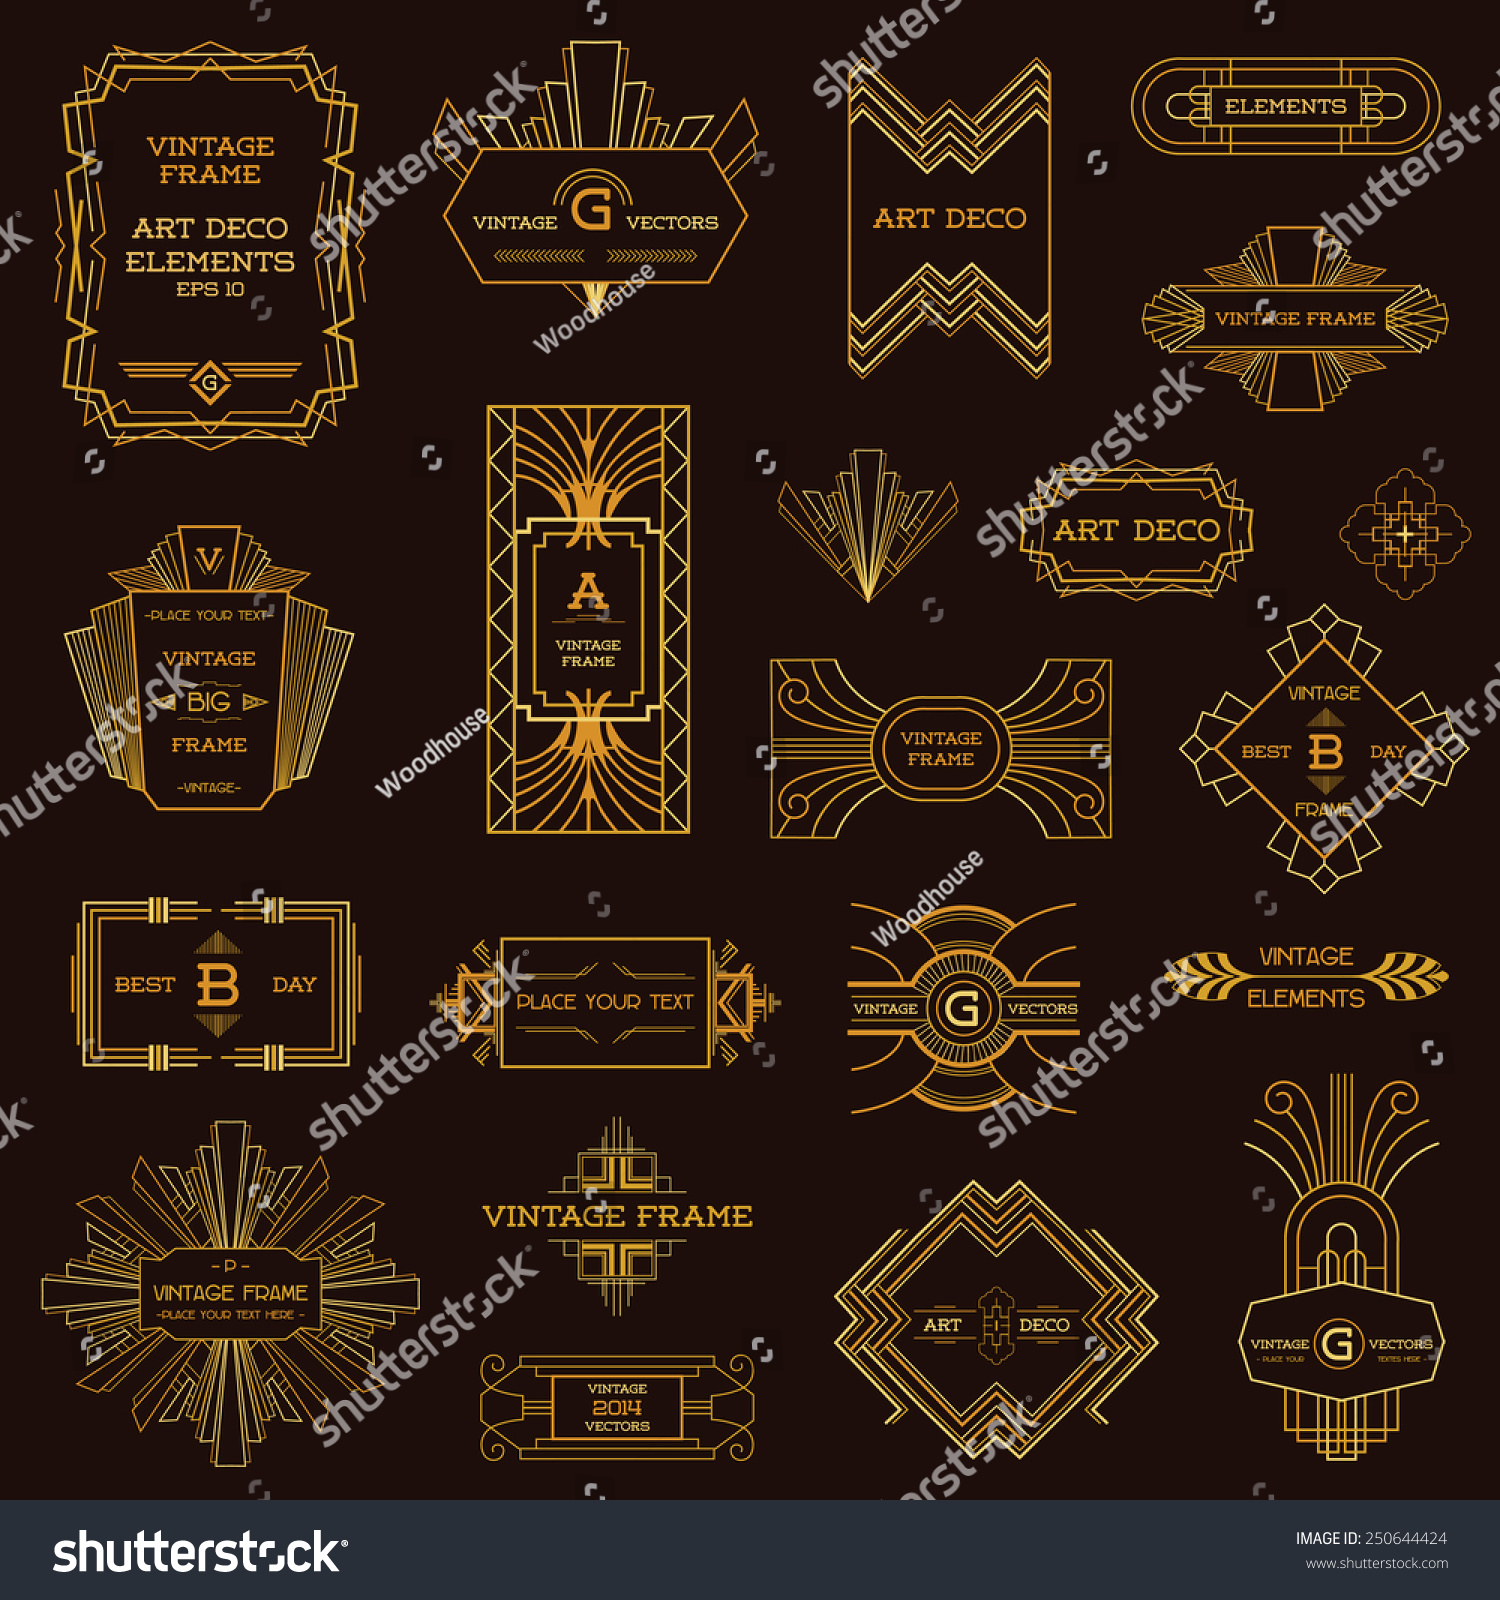 Art deco vintage frames design elements stock vector for Art deco interior design elements